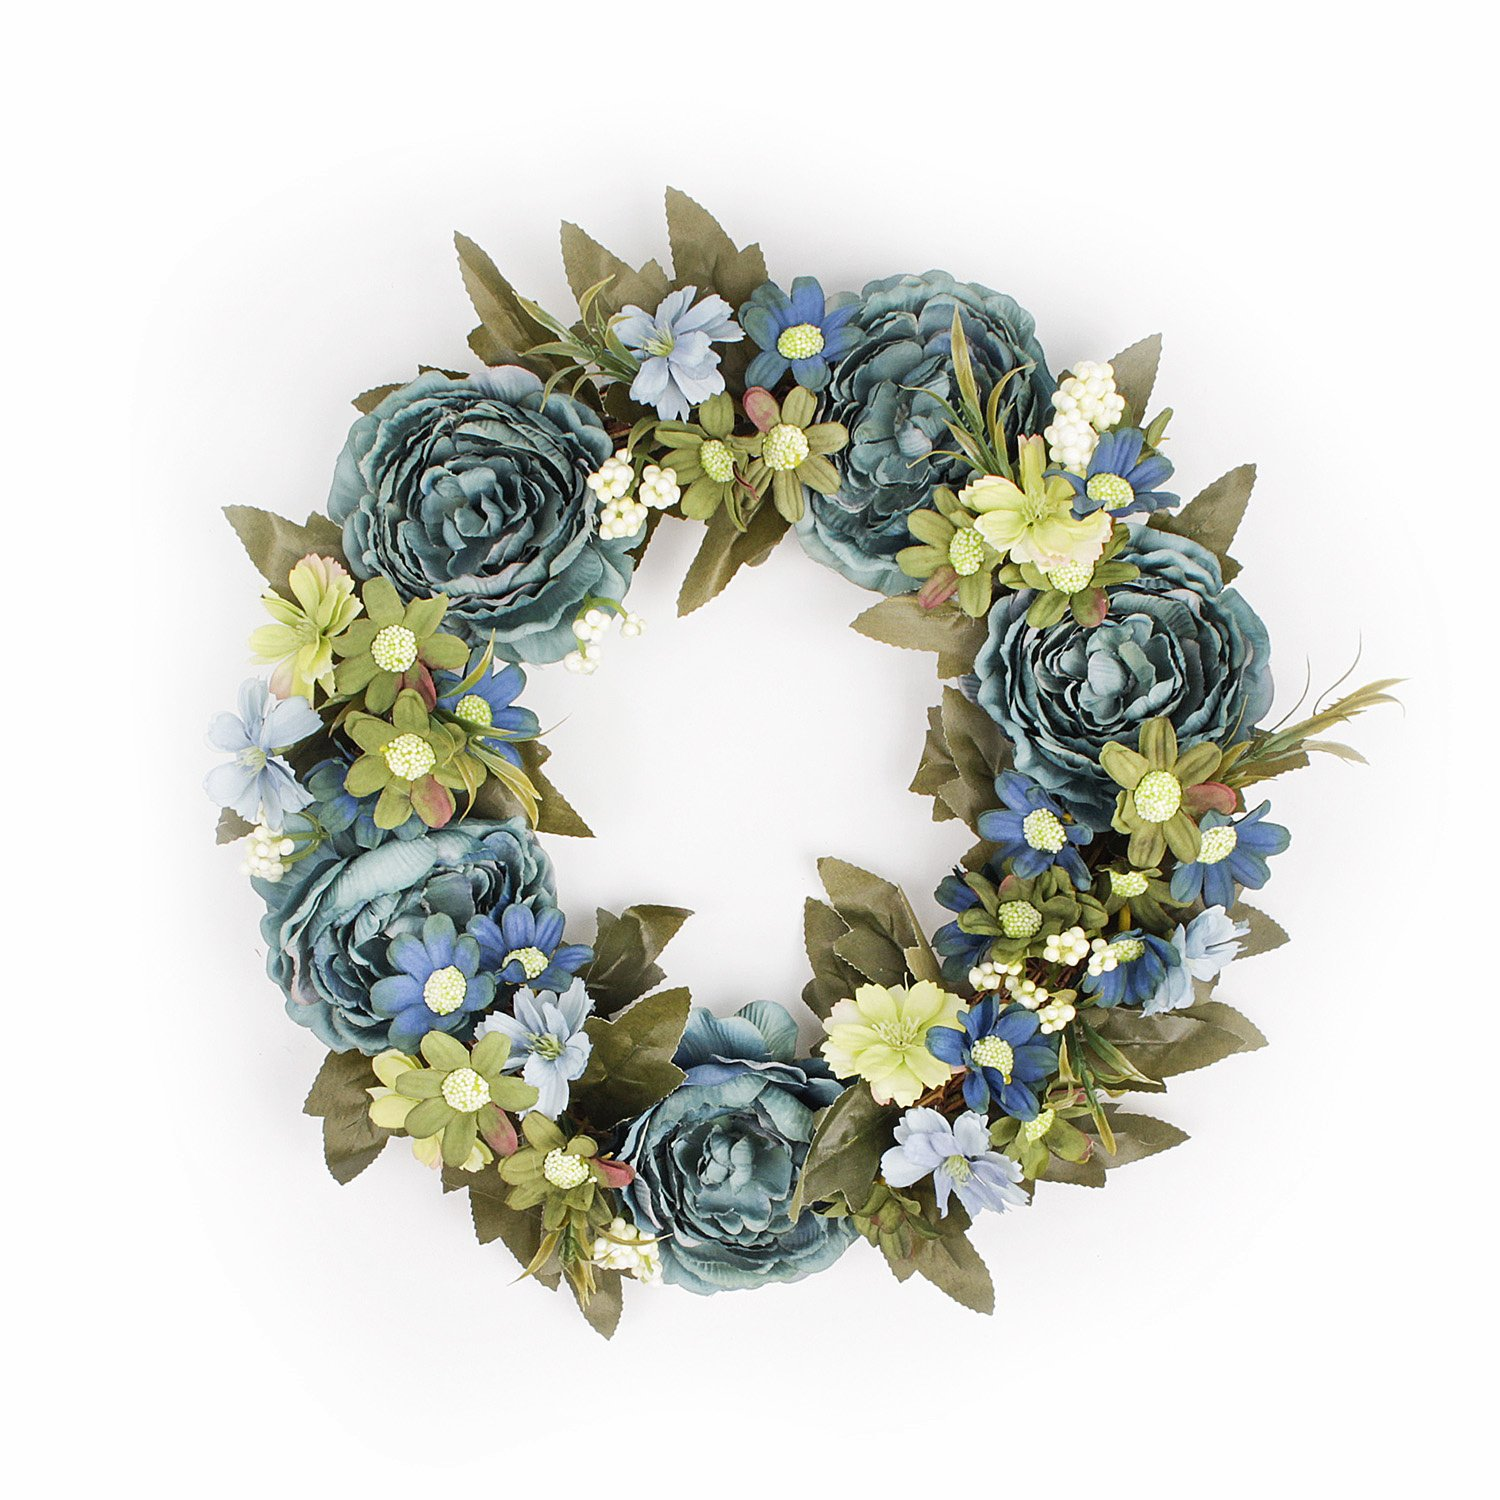 FAVOWREATH 2018 Vintage Series FAVO-W38 Handmade 12/14 inch Blue Peony,Daisy,Wild Flower Grapevine Wreath Summer/Fall Season Festival Front Door/Wall/Fireplace Floral Hanger Home Decor (12 inch)